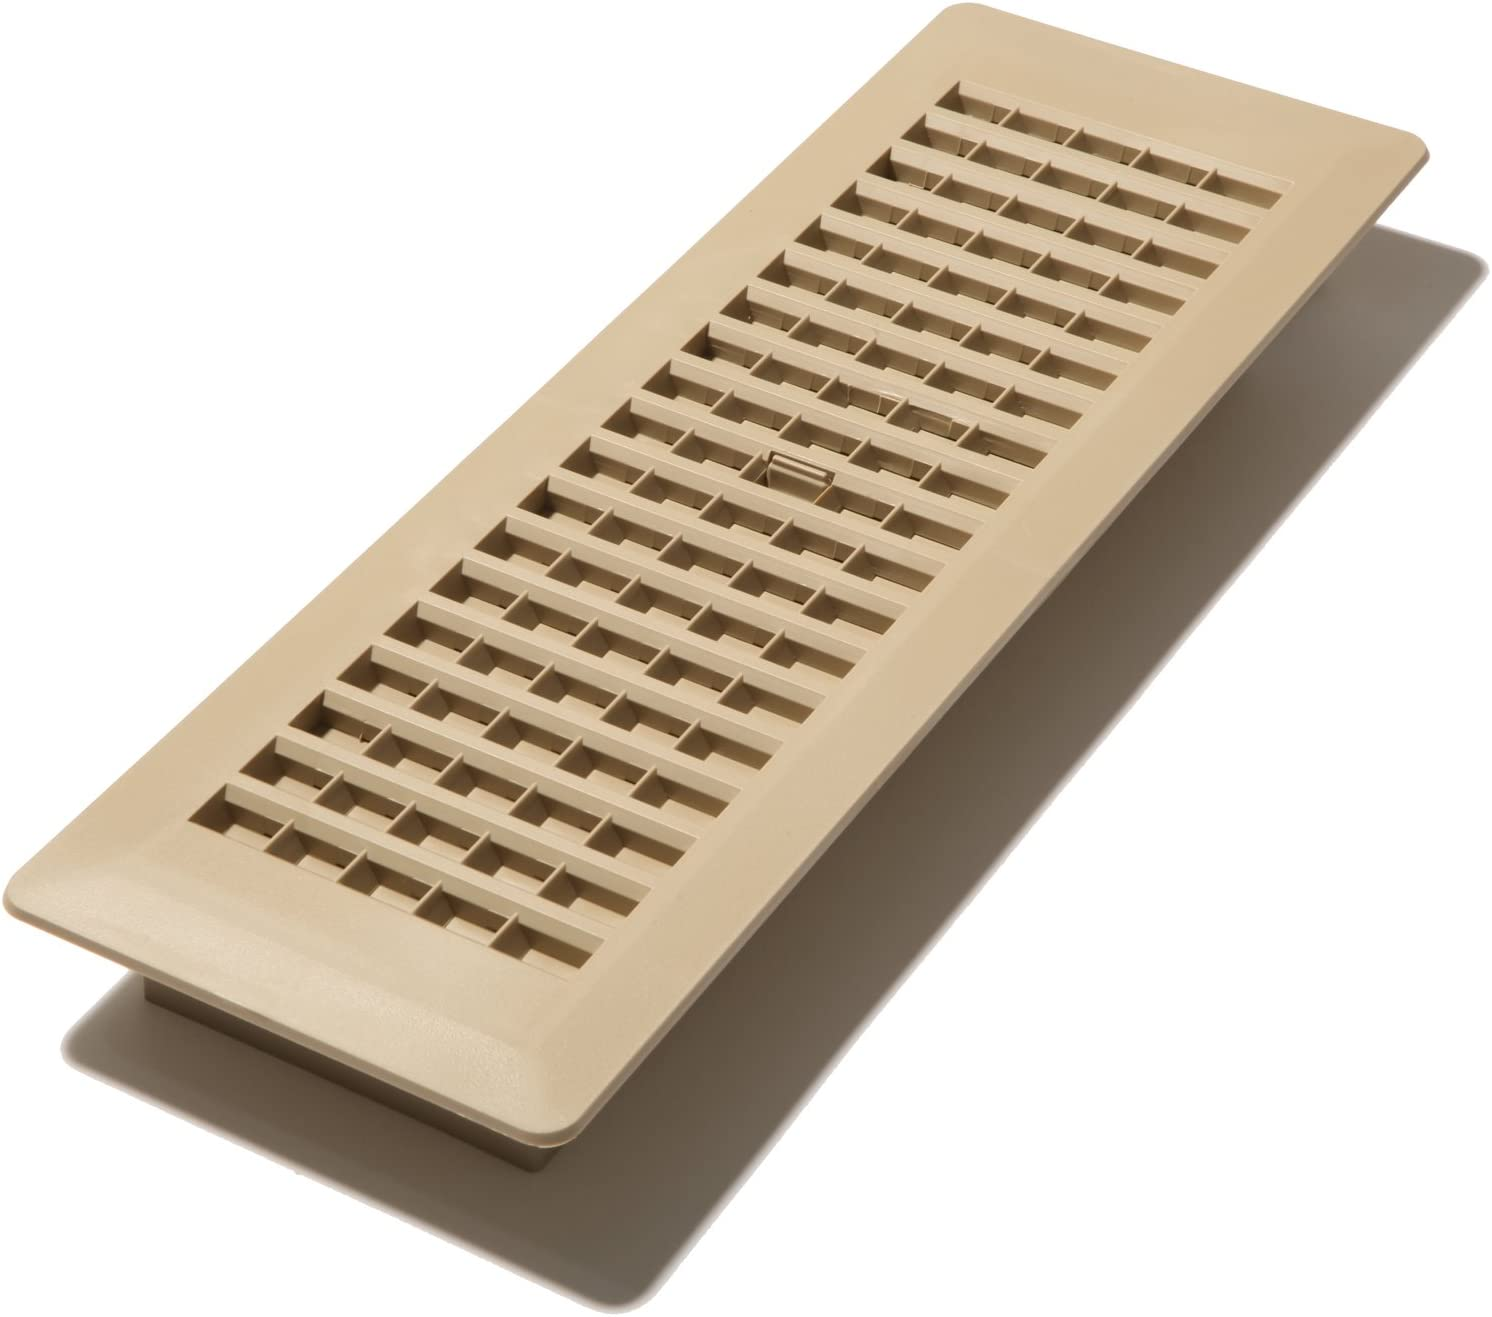 Decor Grates PL414-TA Floor Register, 4 x 14-Inch, Taupe